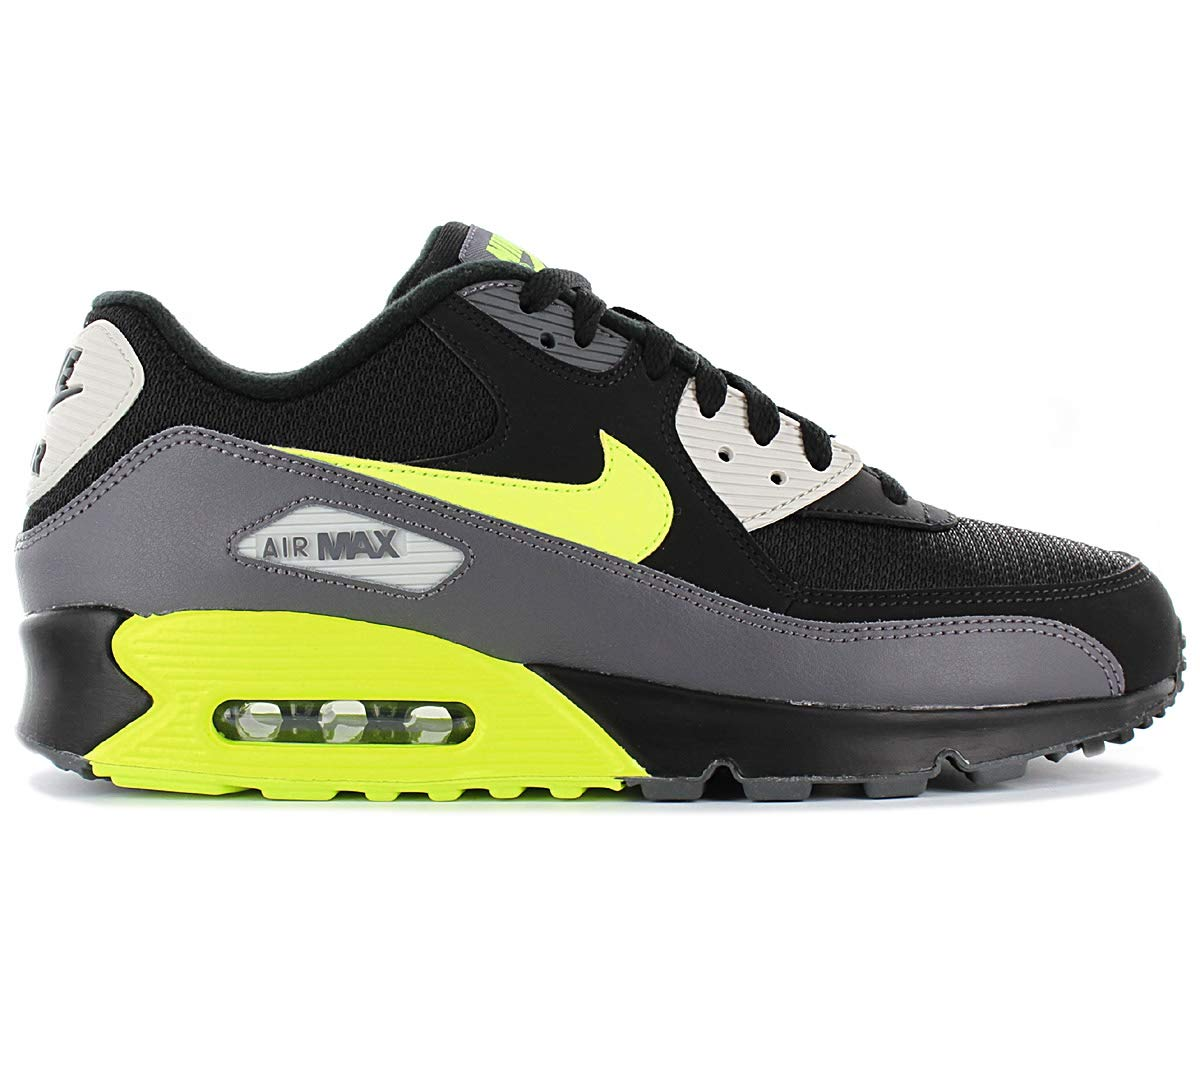 Nike Mens Air Max 90 Essential Running Shoes Dark GreyVoltBlackBone AJ1285 015 Size 10.5